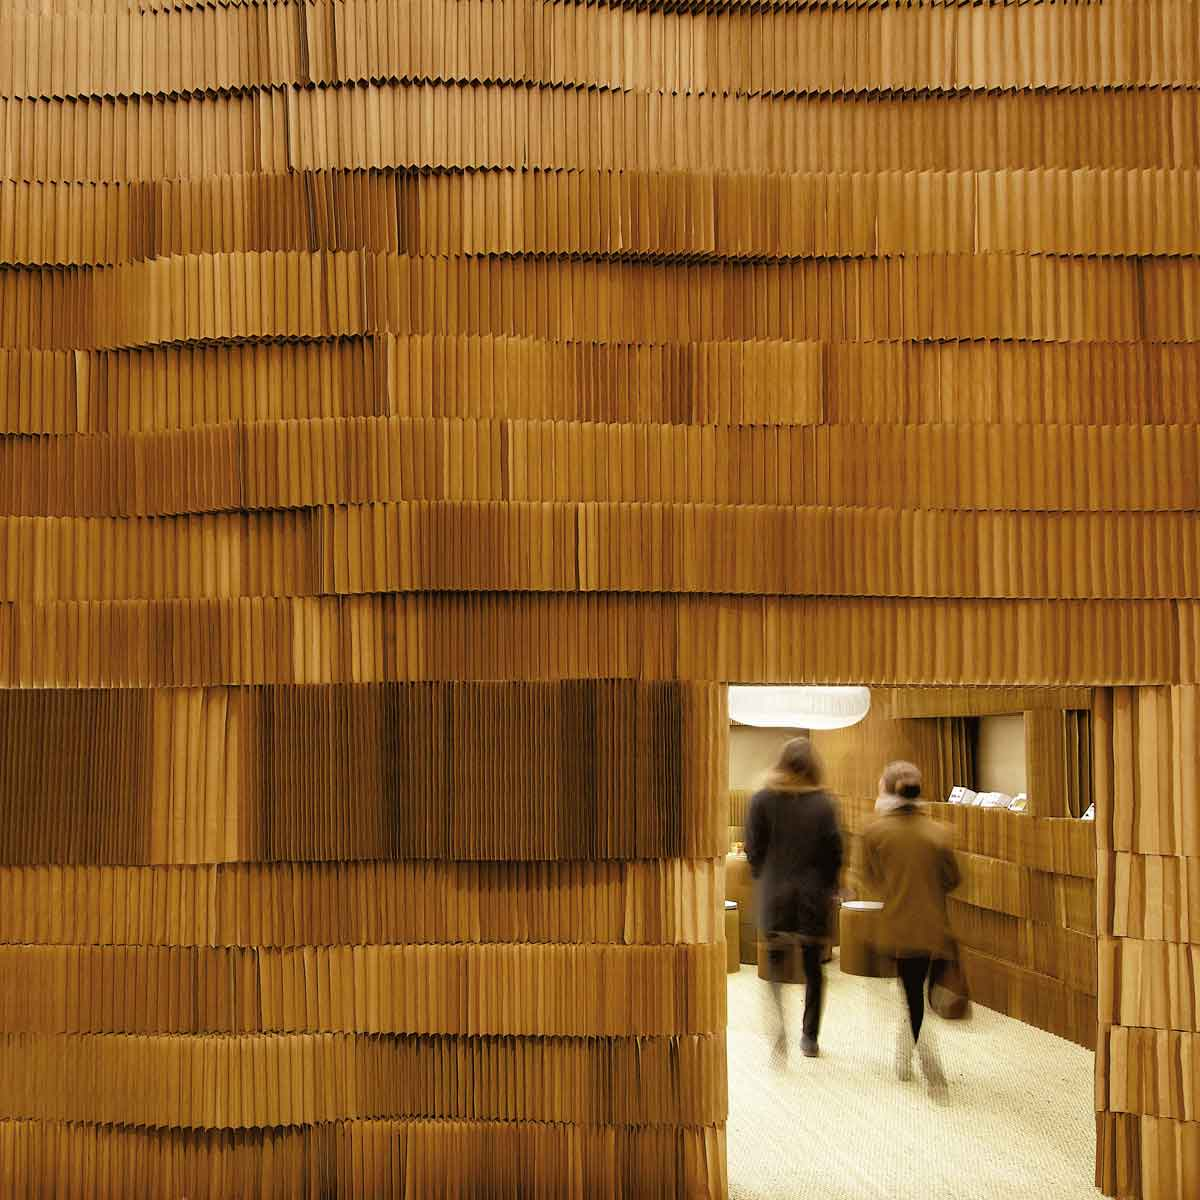 Paper Installation by Molo Design at Maison & Objet | Yellowtrace